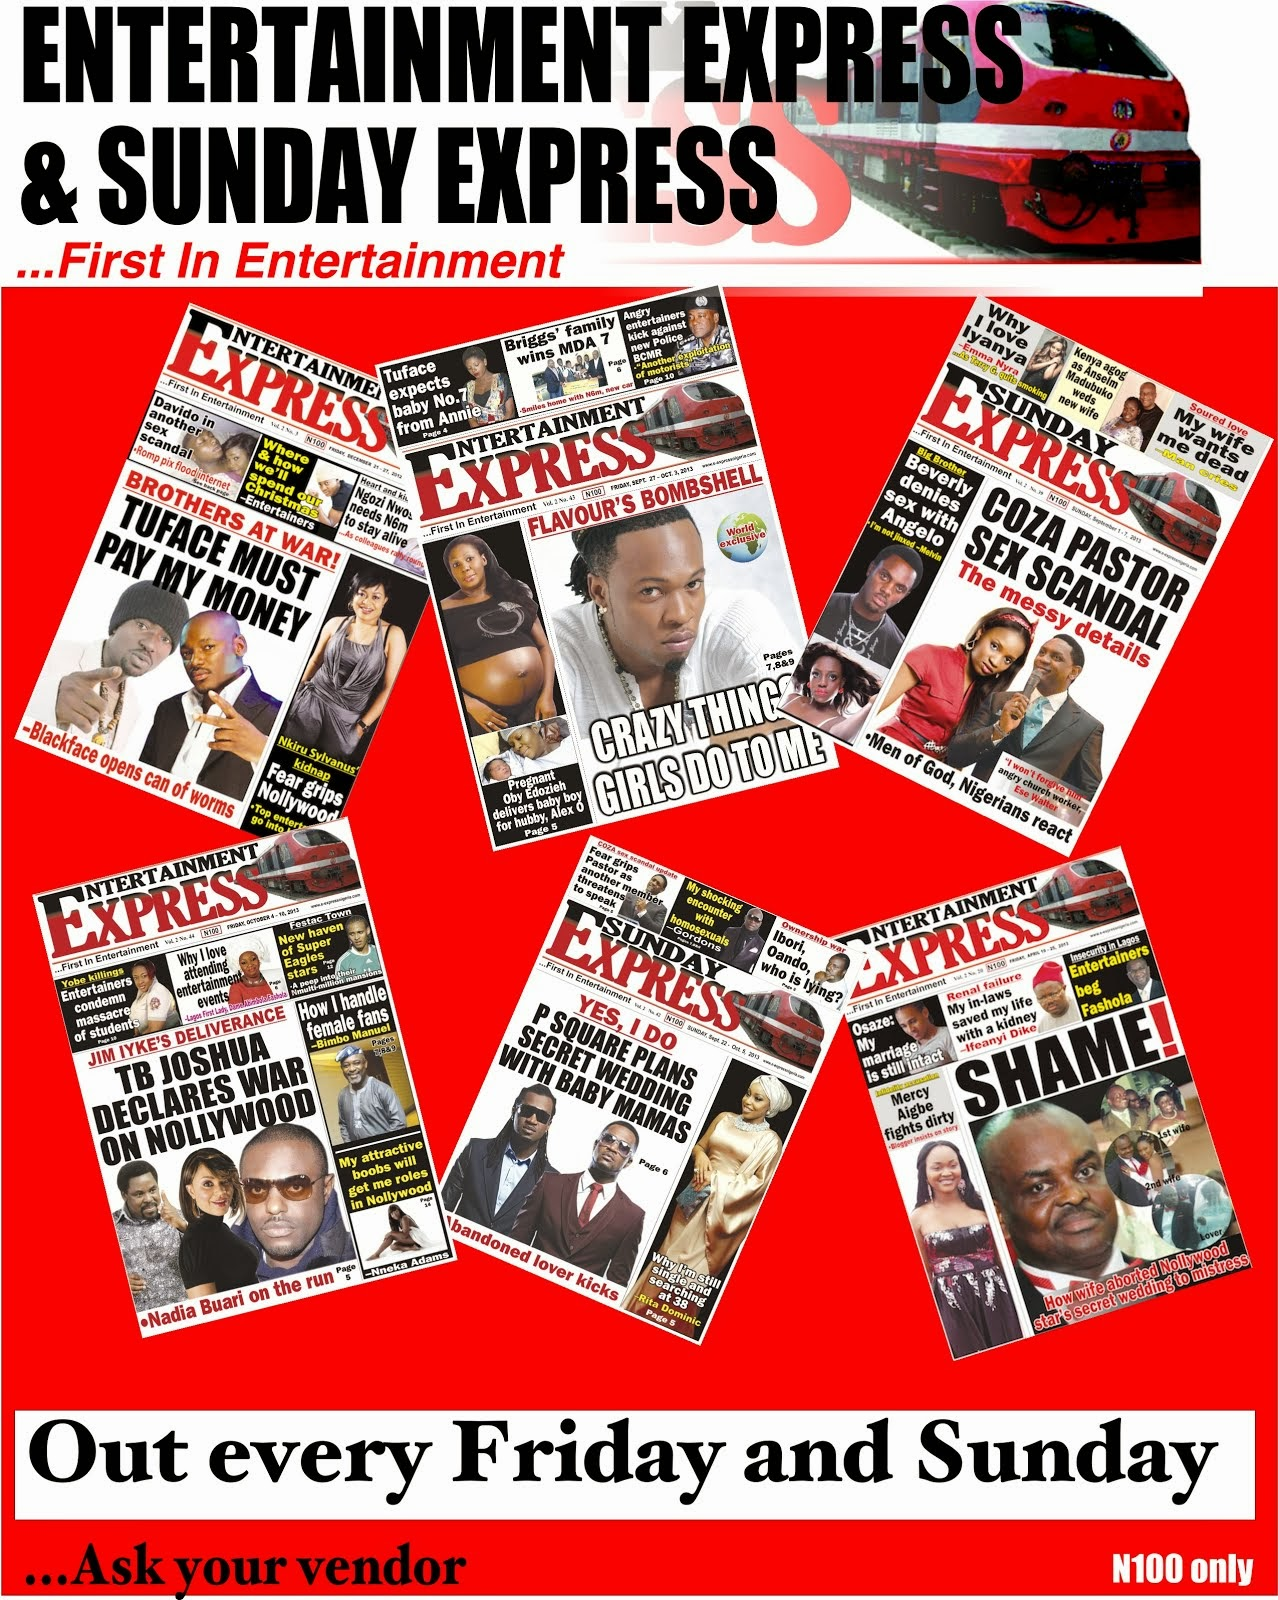 Entertainment Express & Sunday Express